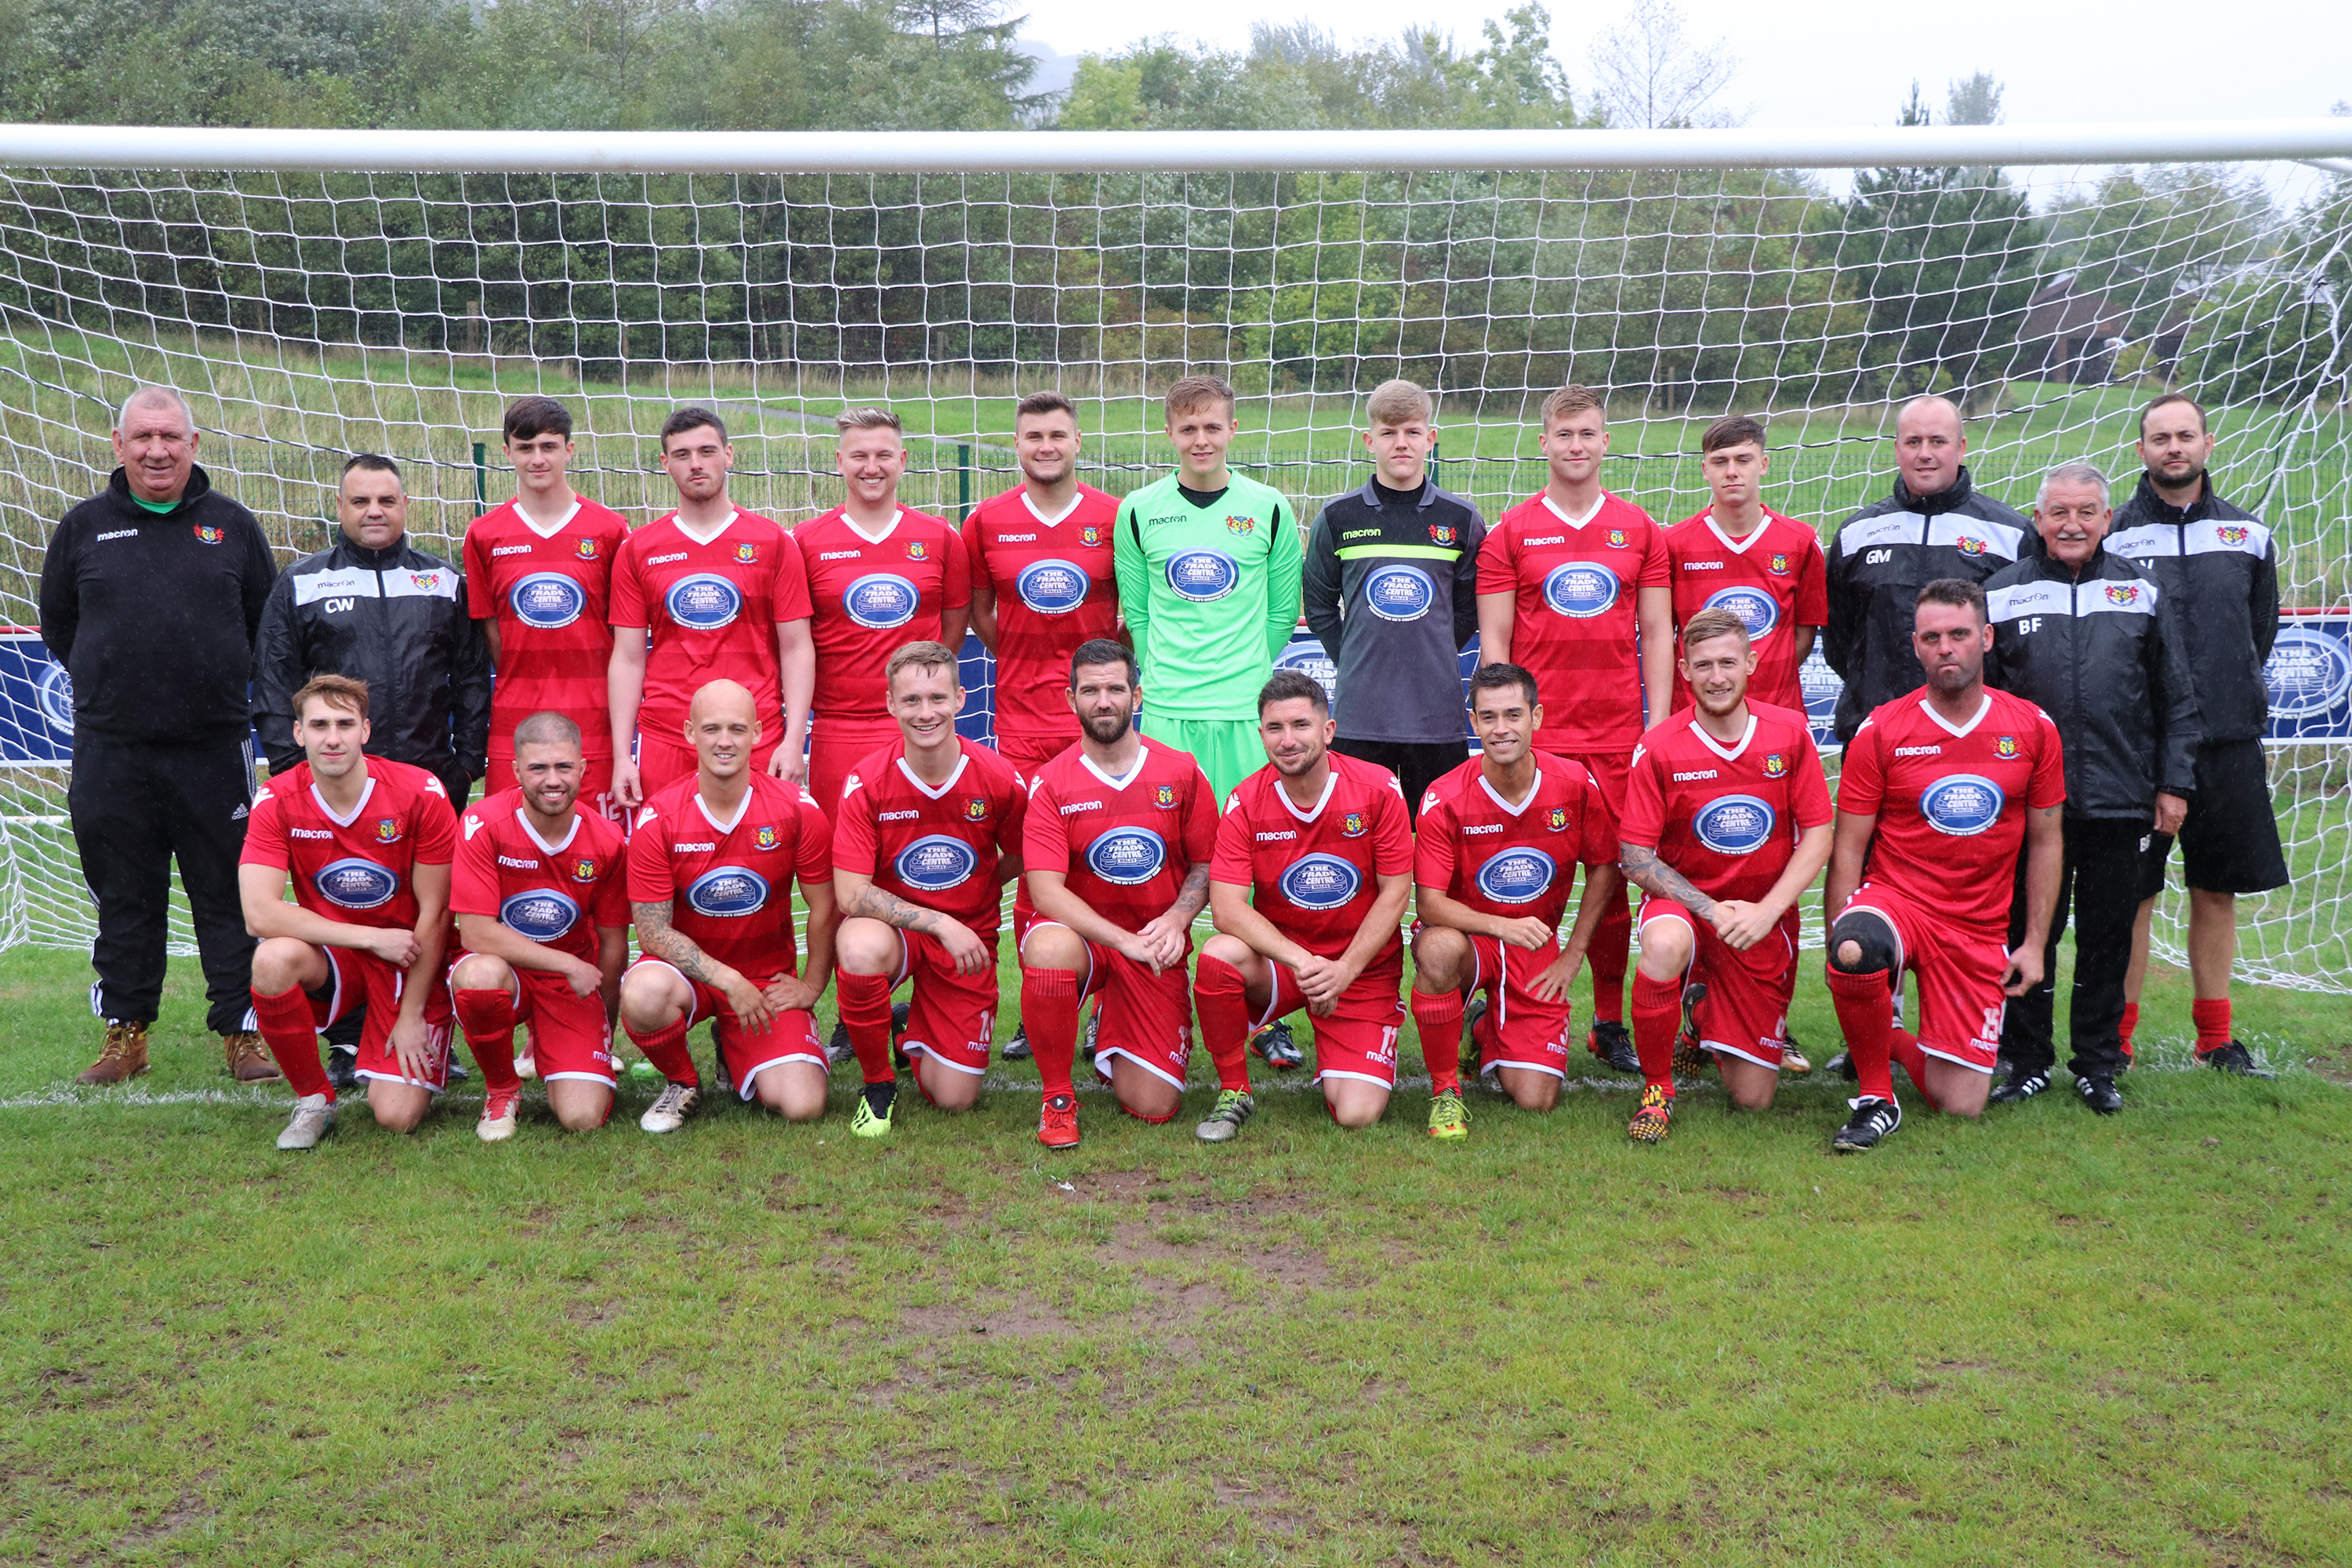 A new kit for the Abertillery Excelsiors thanks to support from The Trade Centre Wales image